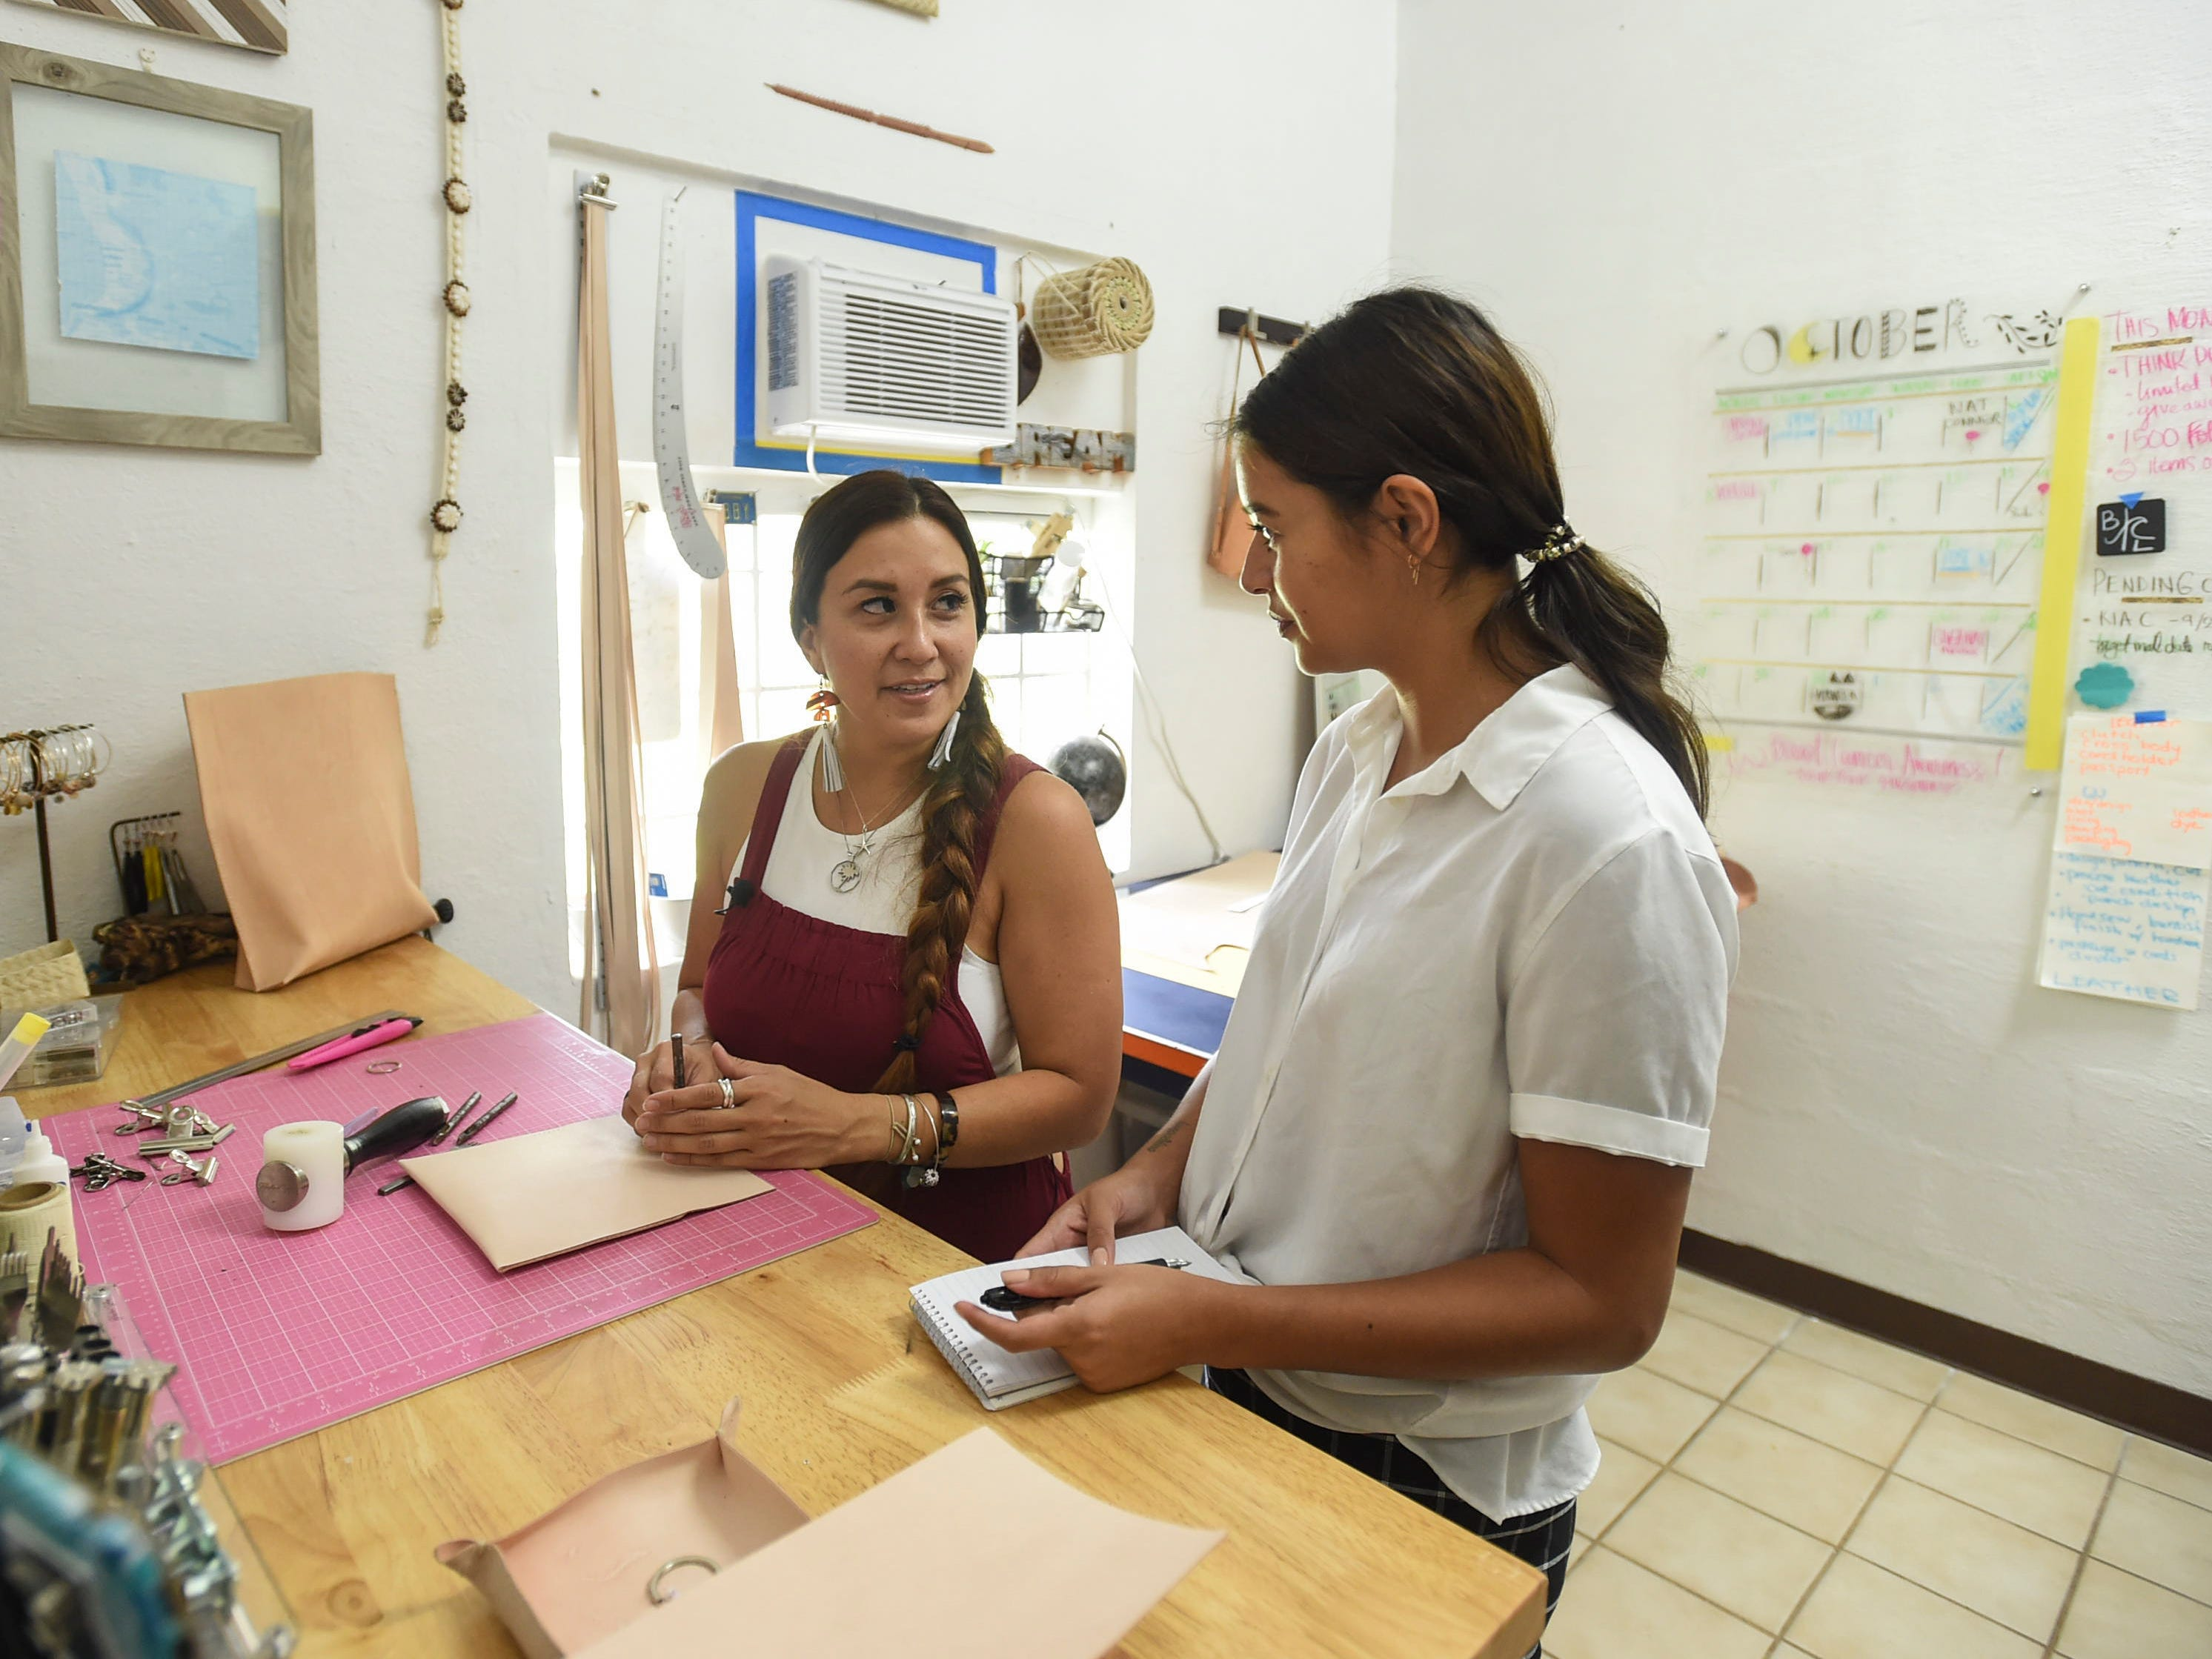 Pacific Daily News reporter Chloe Babauta, right, interviews The Blue Latitude owner Abby Crain in Merizo on Oct. 2, 2018.